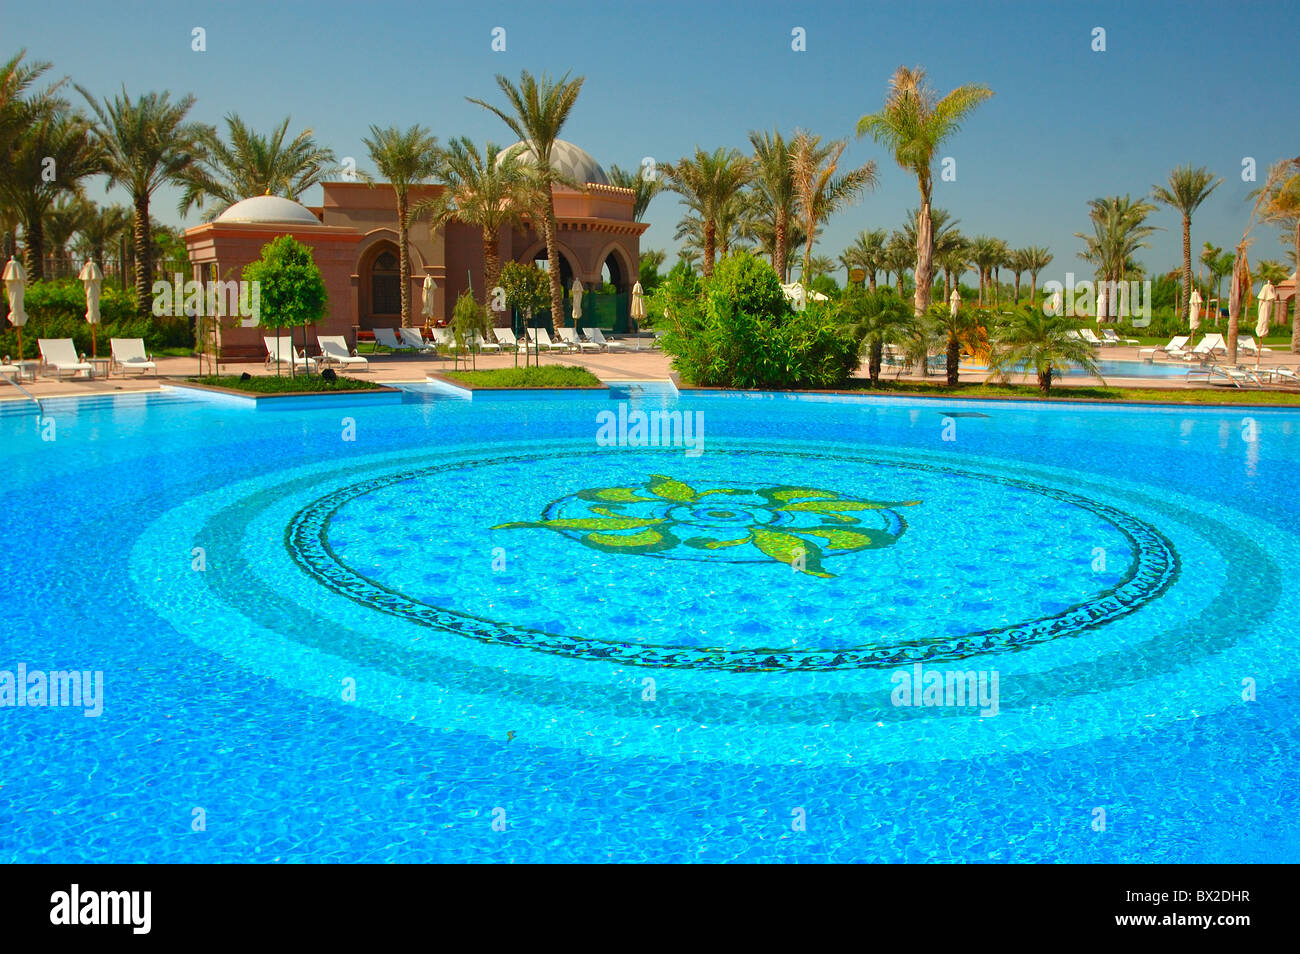 Emirate Palace Hotel Swimming Pool Swimming Pool Tourism Holidays Stock Photo 33246019 Alamy